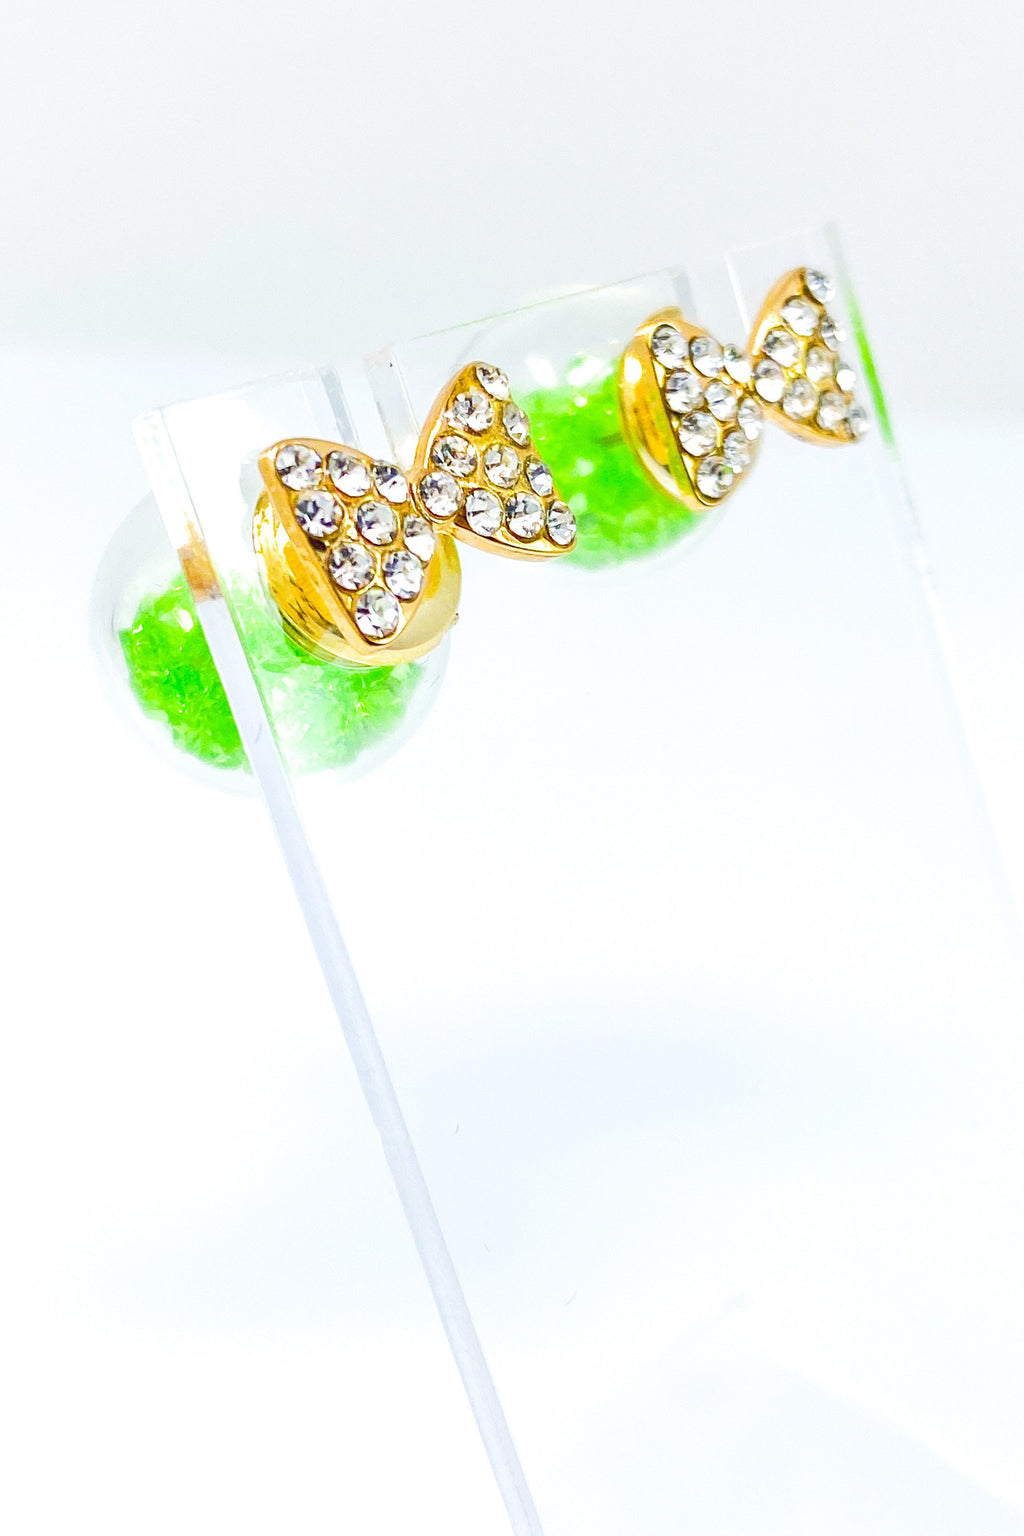 Bowtie Ice Studs - EarringEverything.com - Studs - earrings - fashion - fashion_accessories